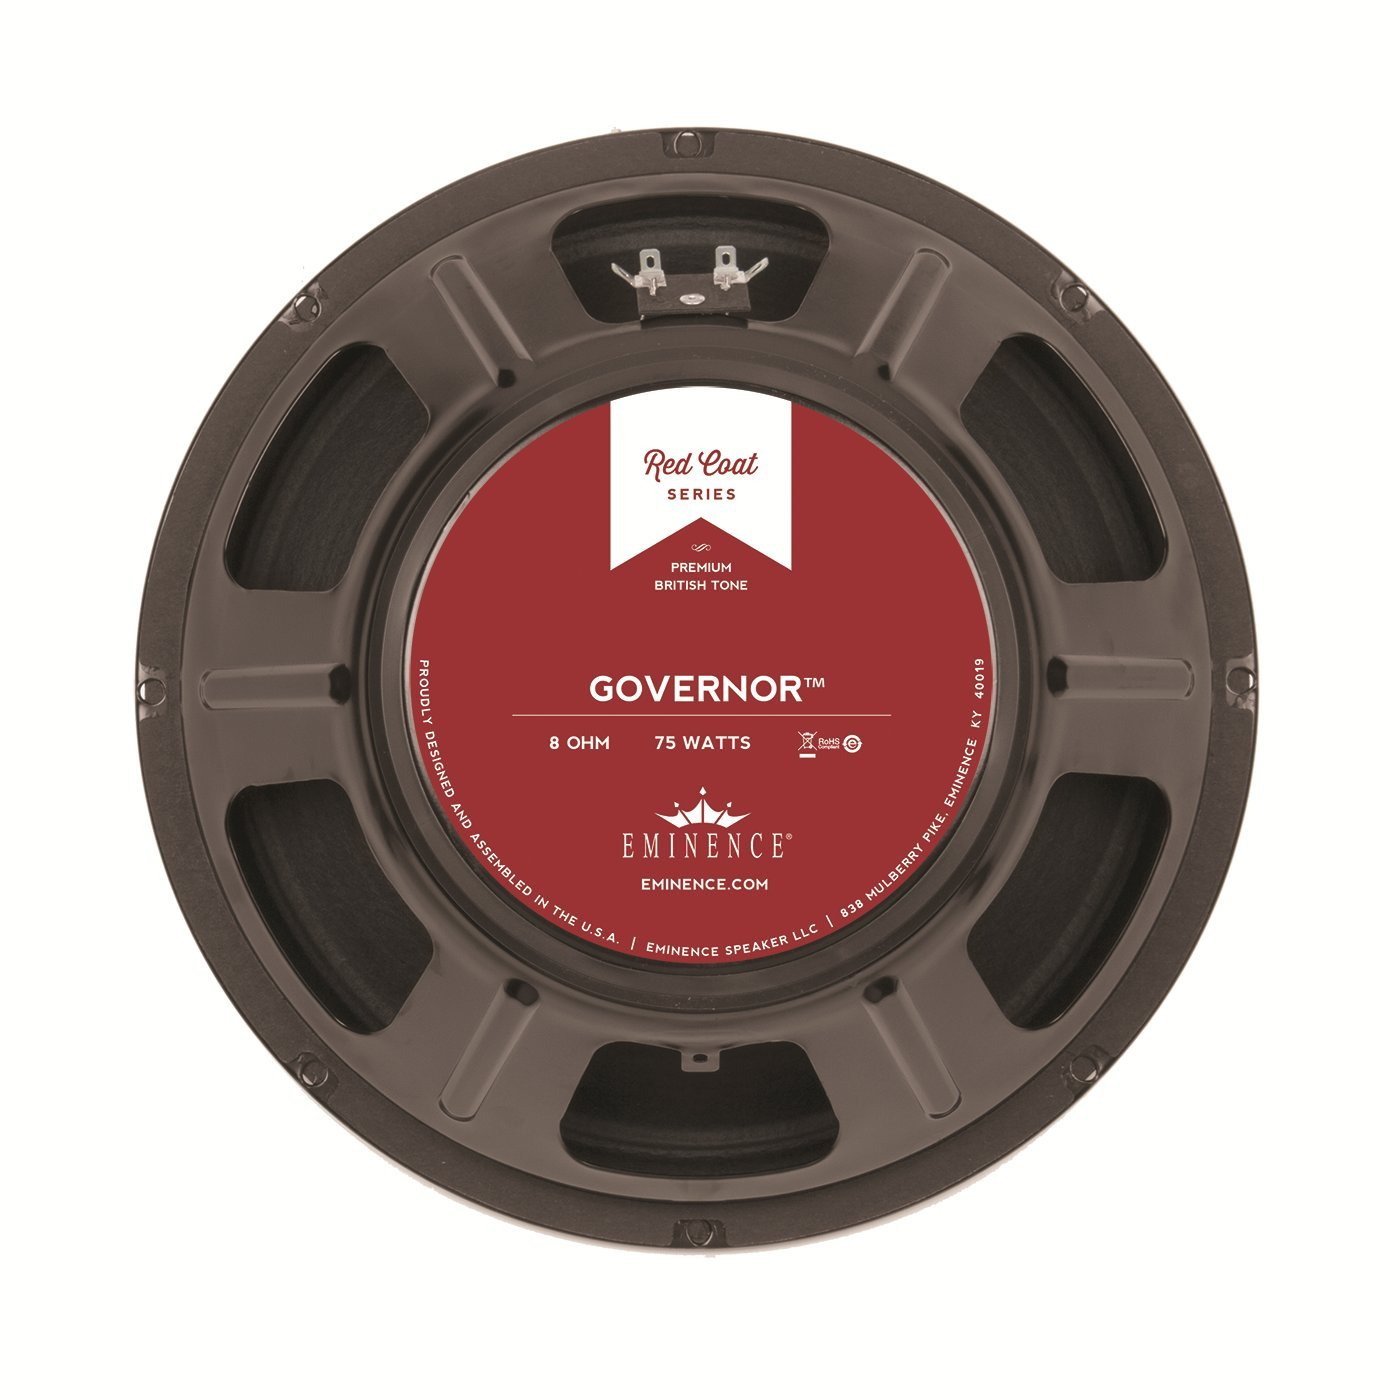 Eminence Red Coat Series The Governor 12'' Guitar Speaker, 75 Watts at 8 Ohms